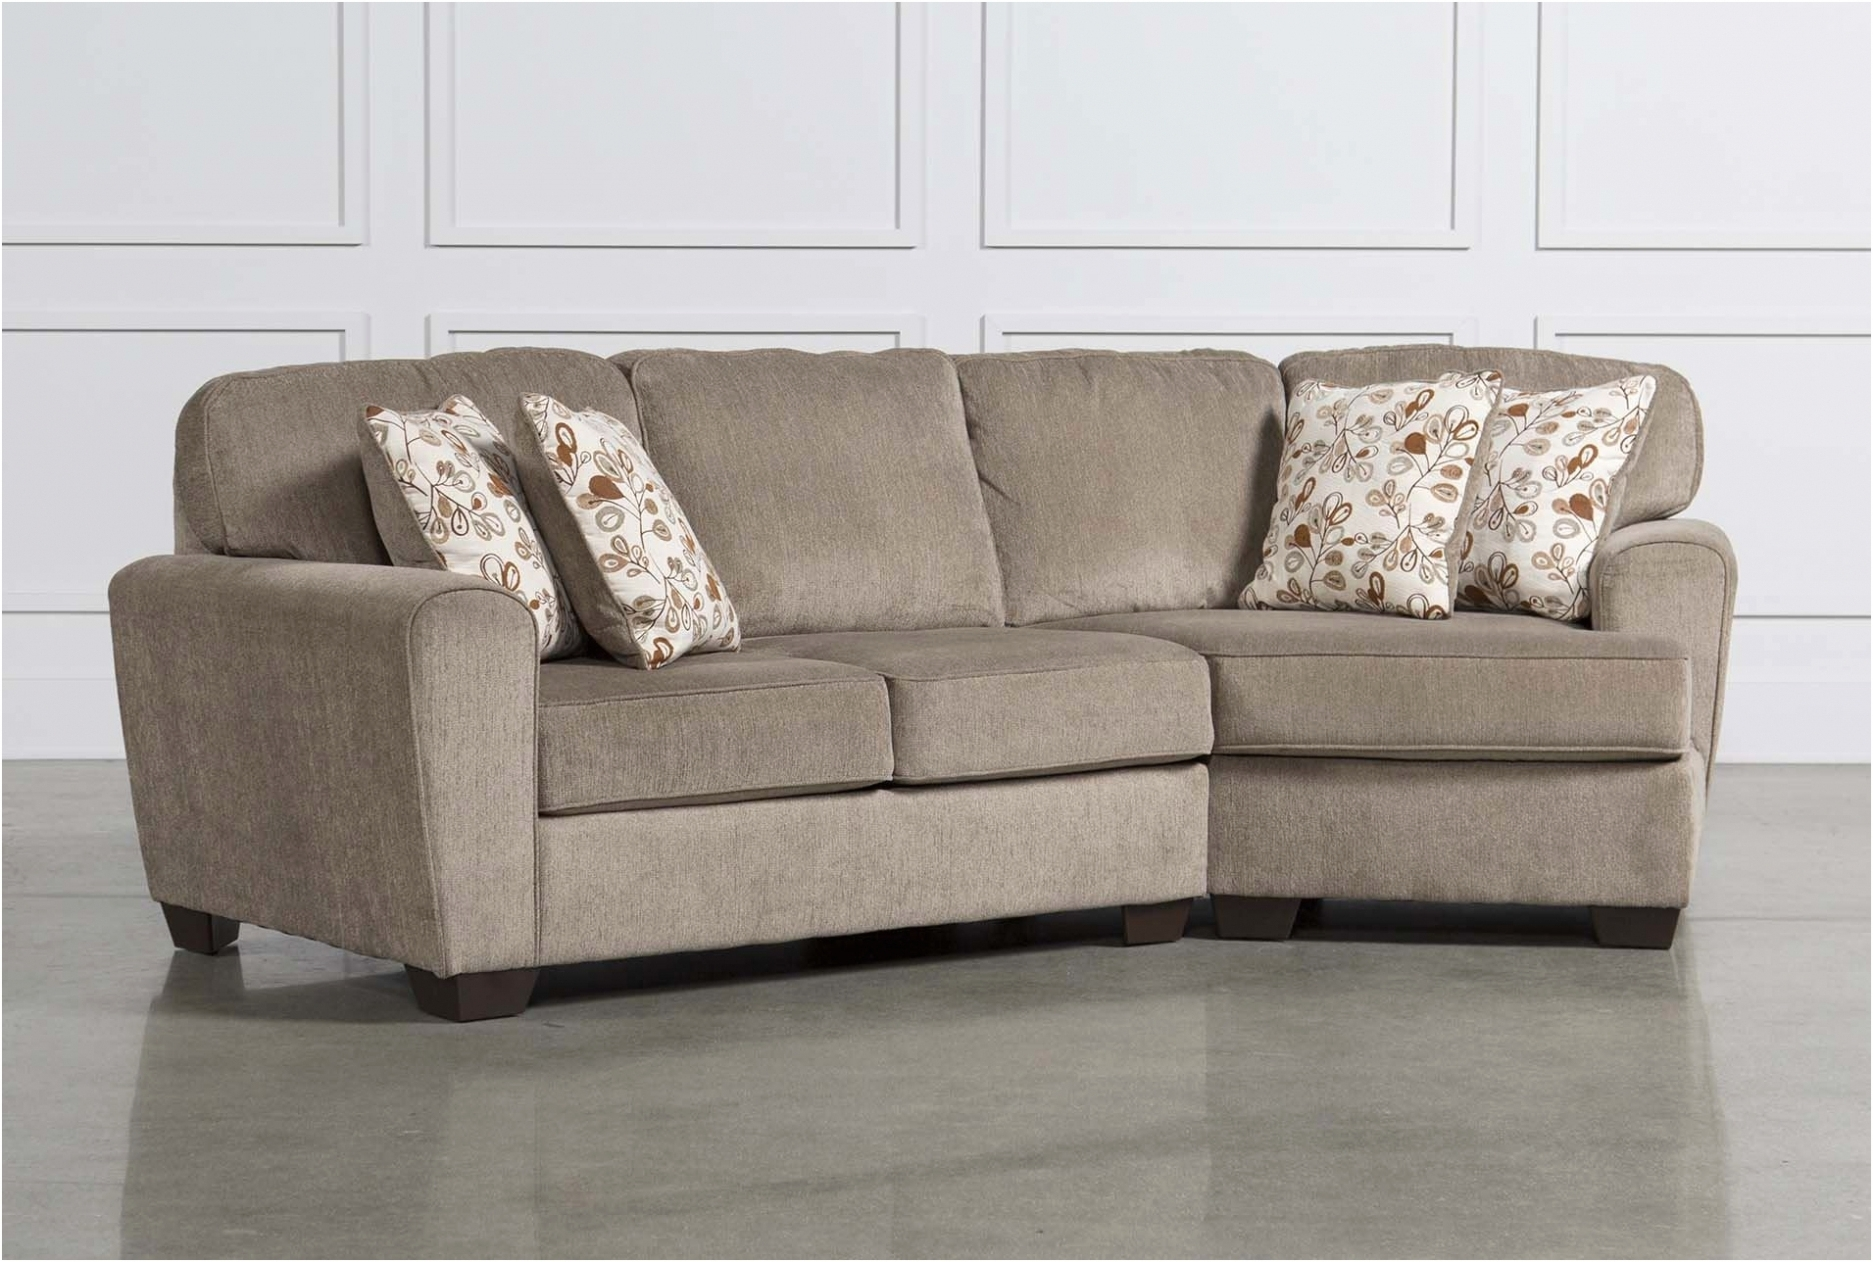 Favorite Furniture: Fresh Sectional Sofa With Cuddler Chaise New – Sofa For Living Spaces Sectional Sofas (View 4 of 20)